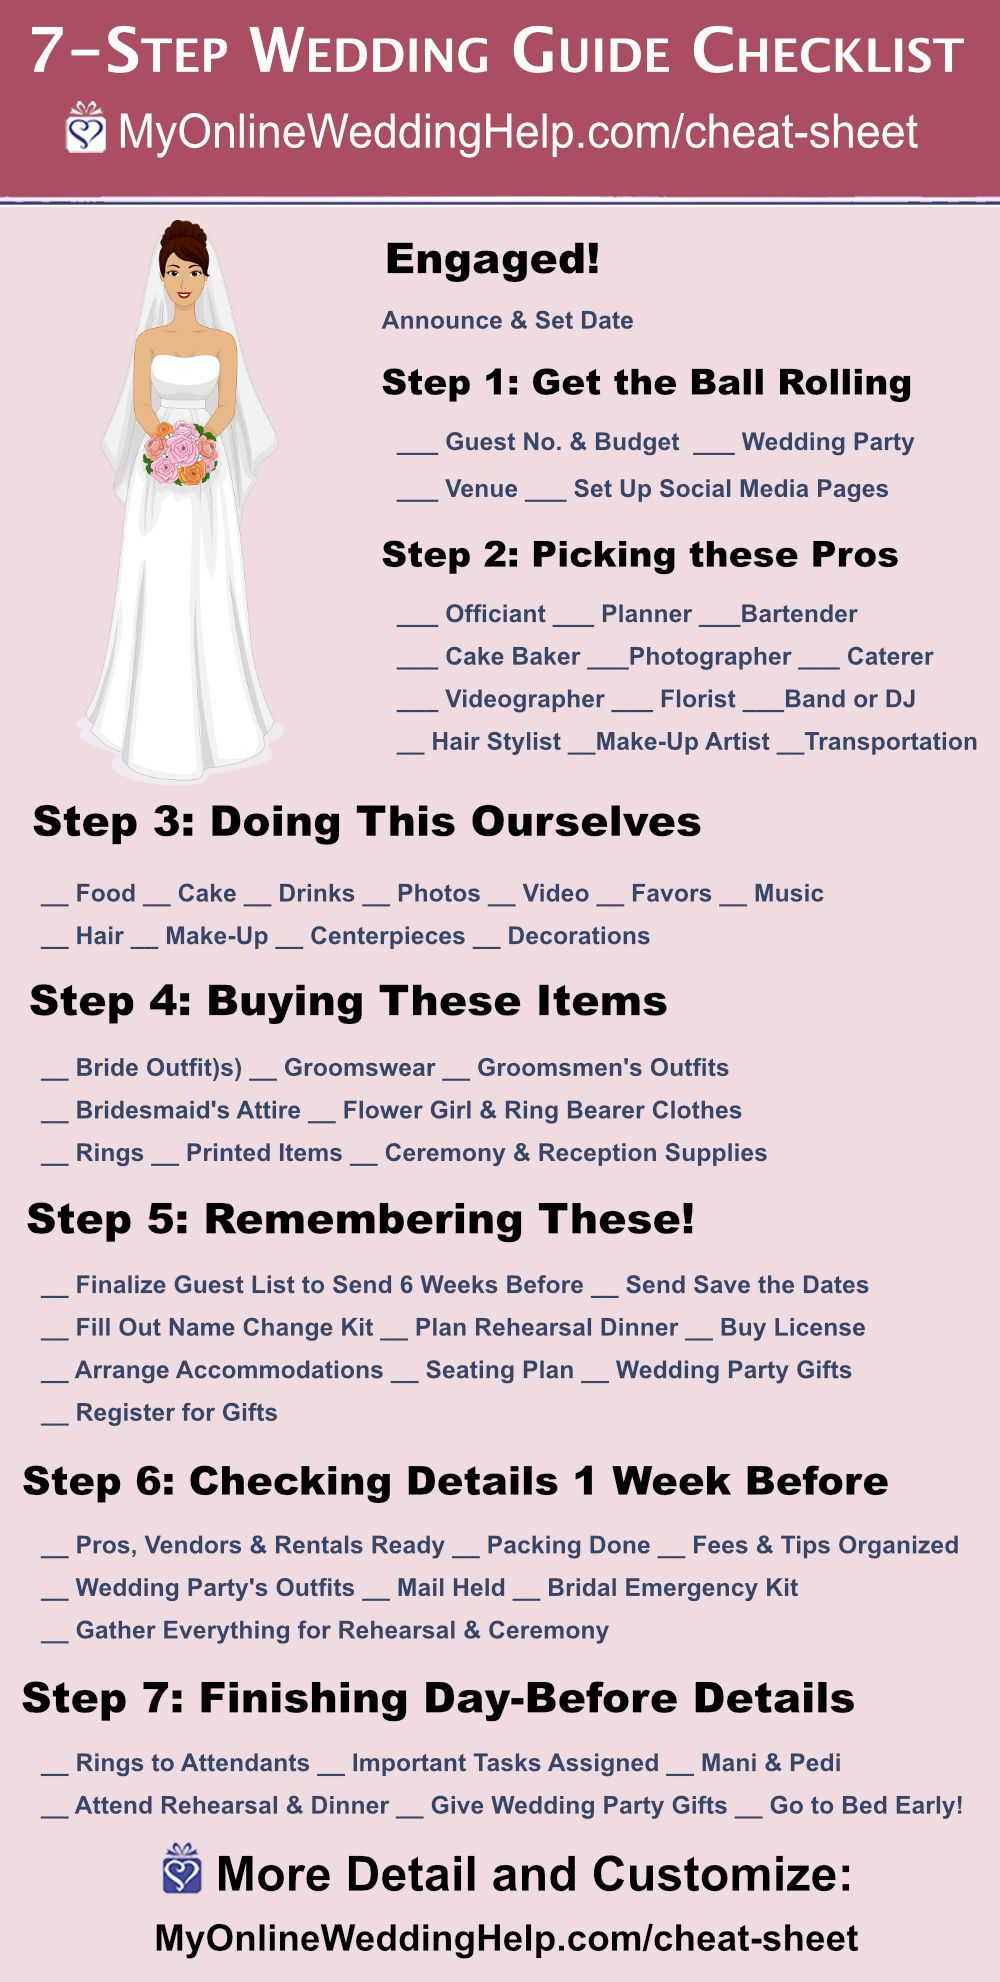 7-Step Wedding Guide Checklist and Printable